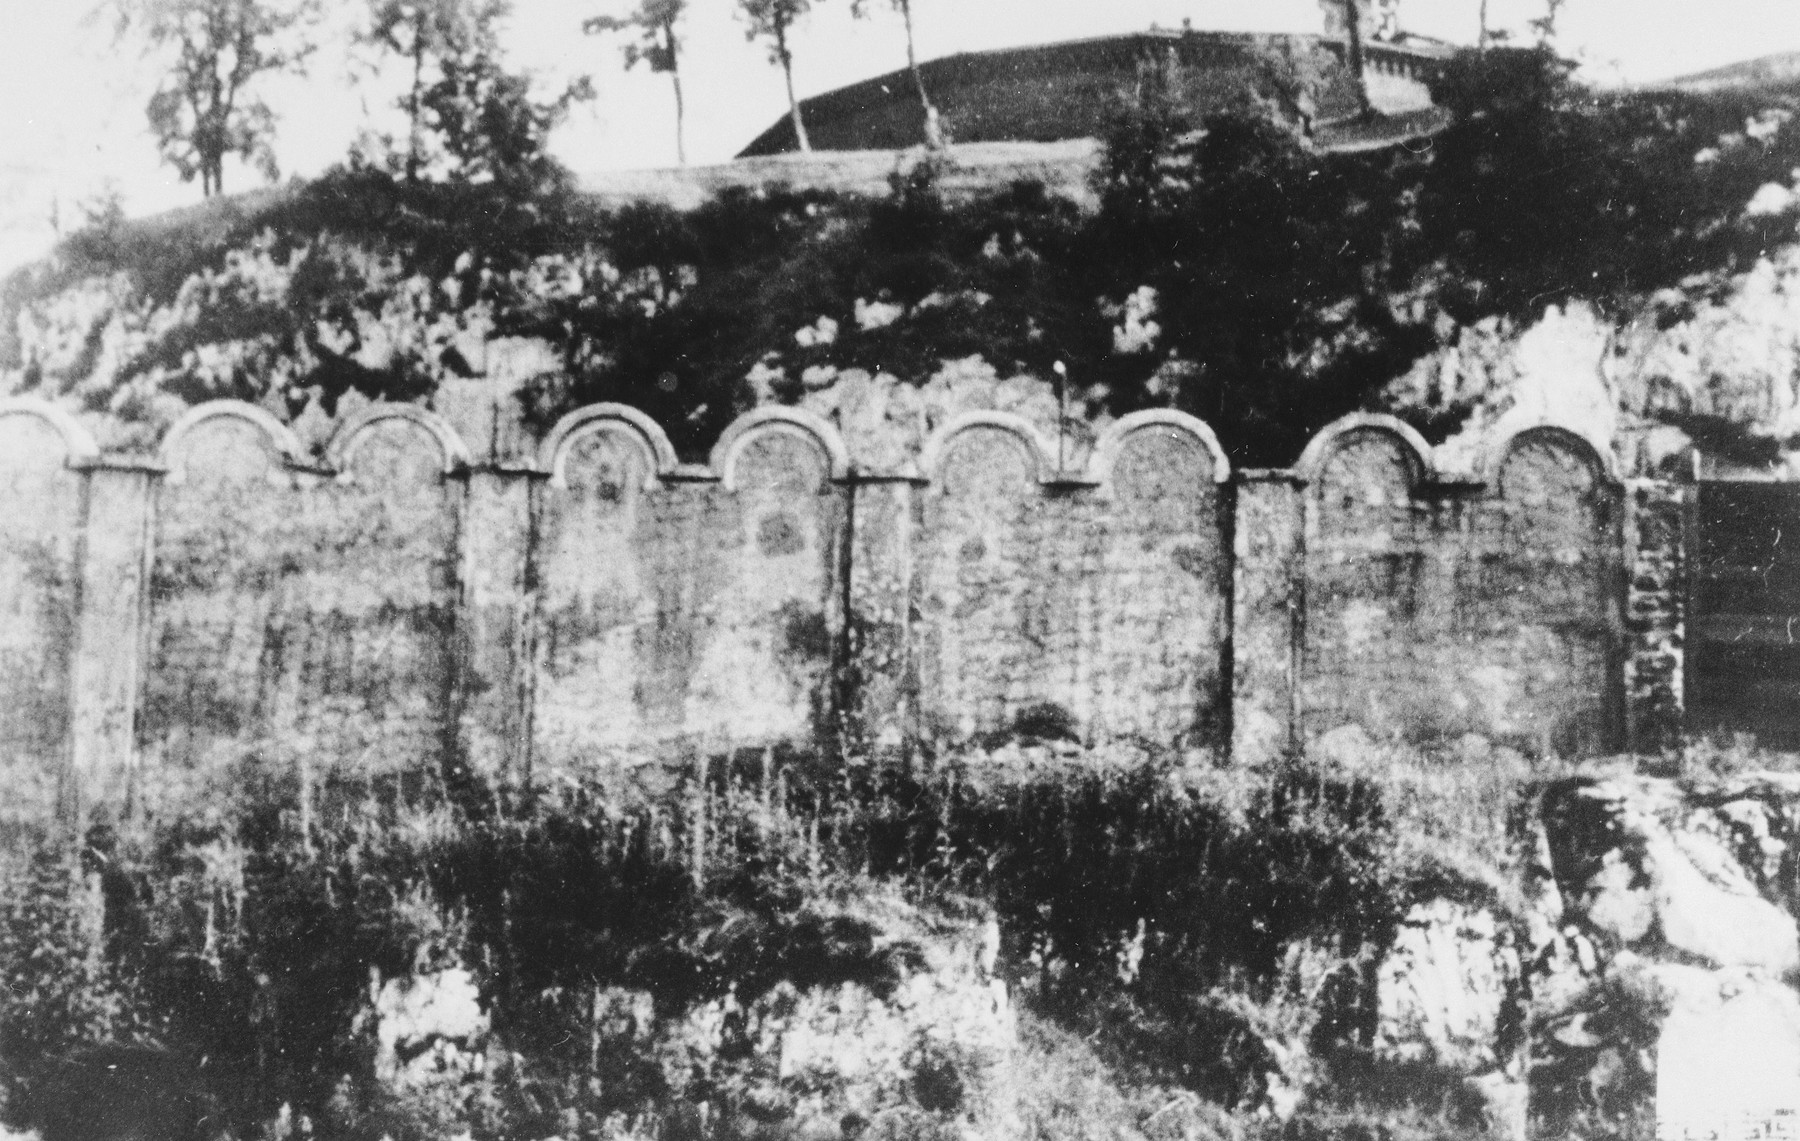 View of a section of the wall enclosing the Krakow ghetto.